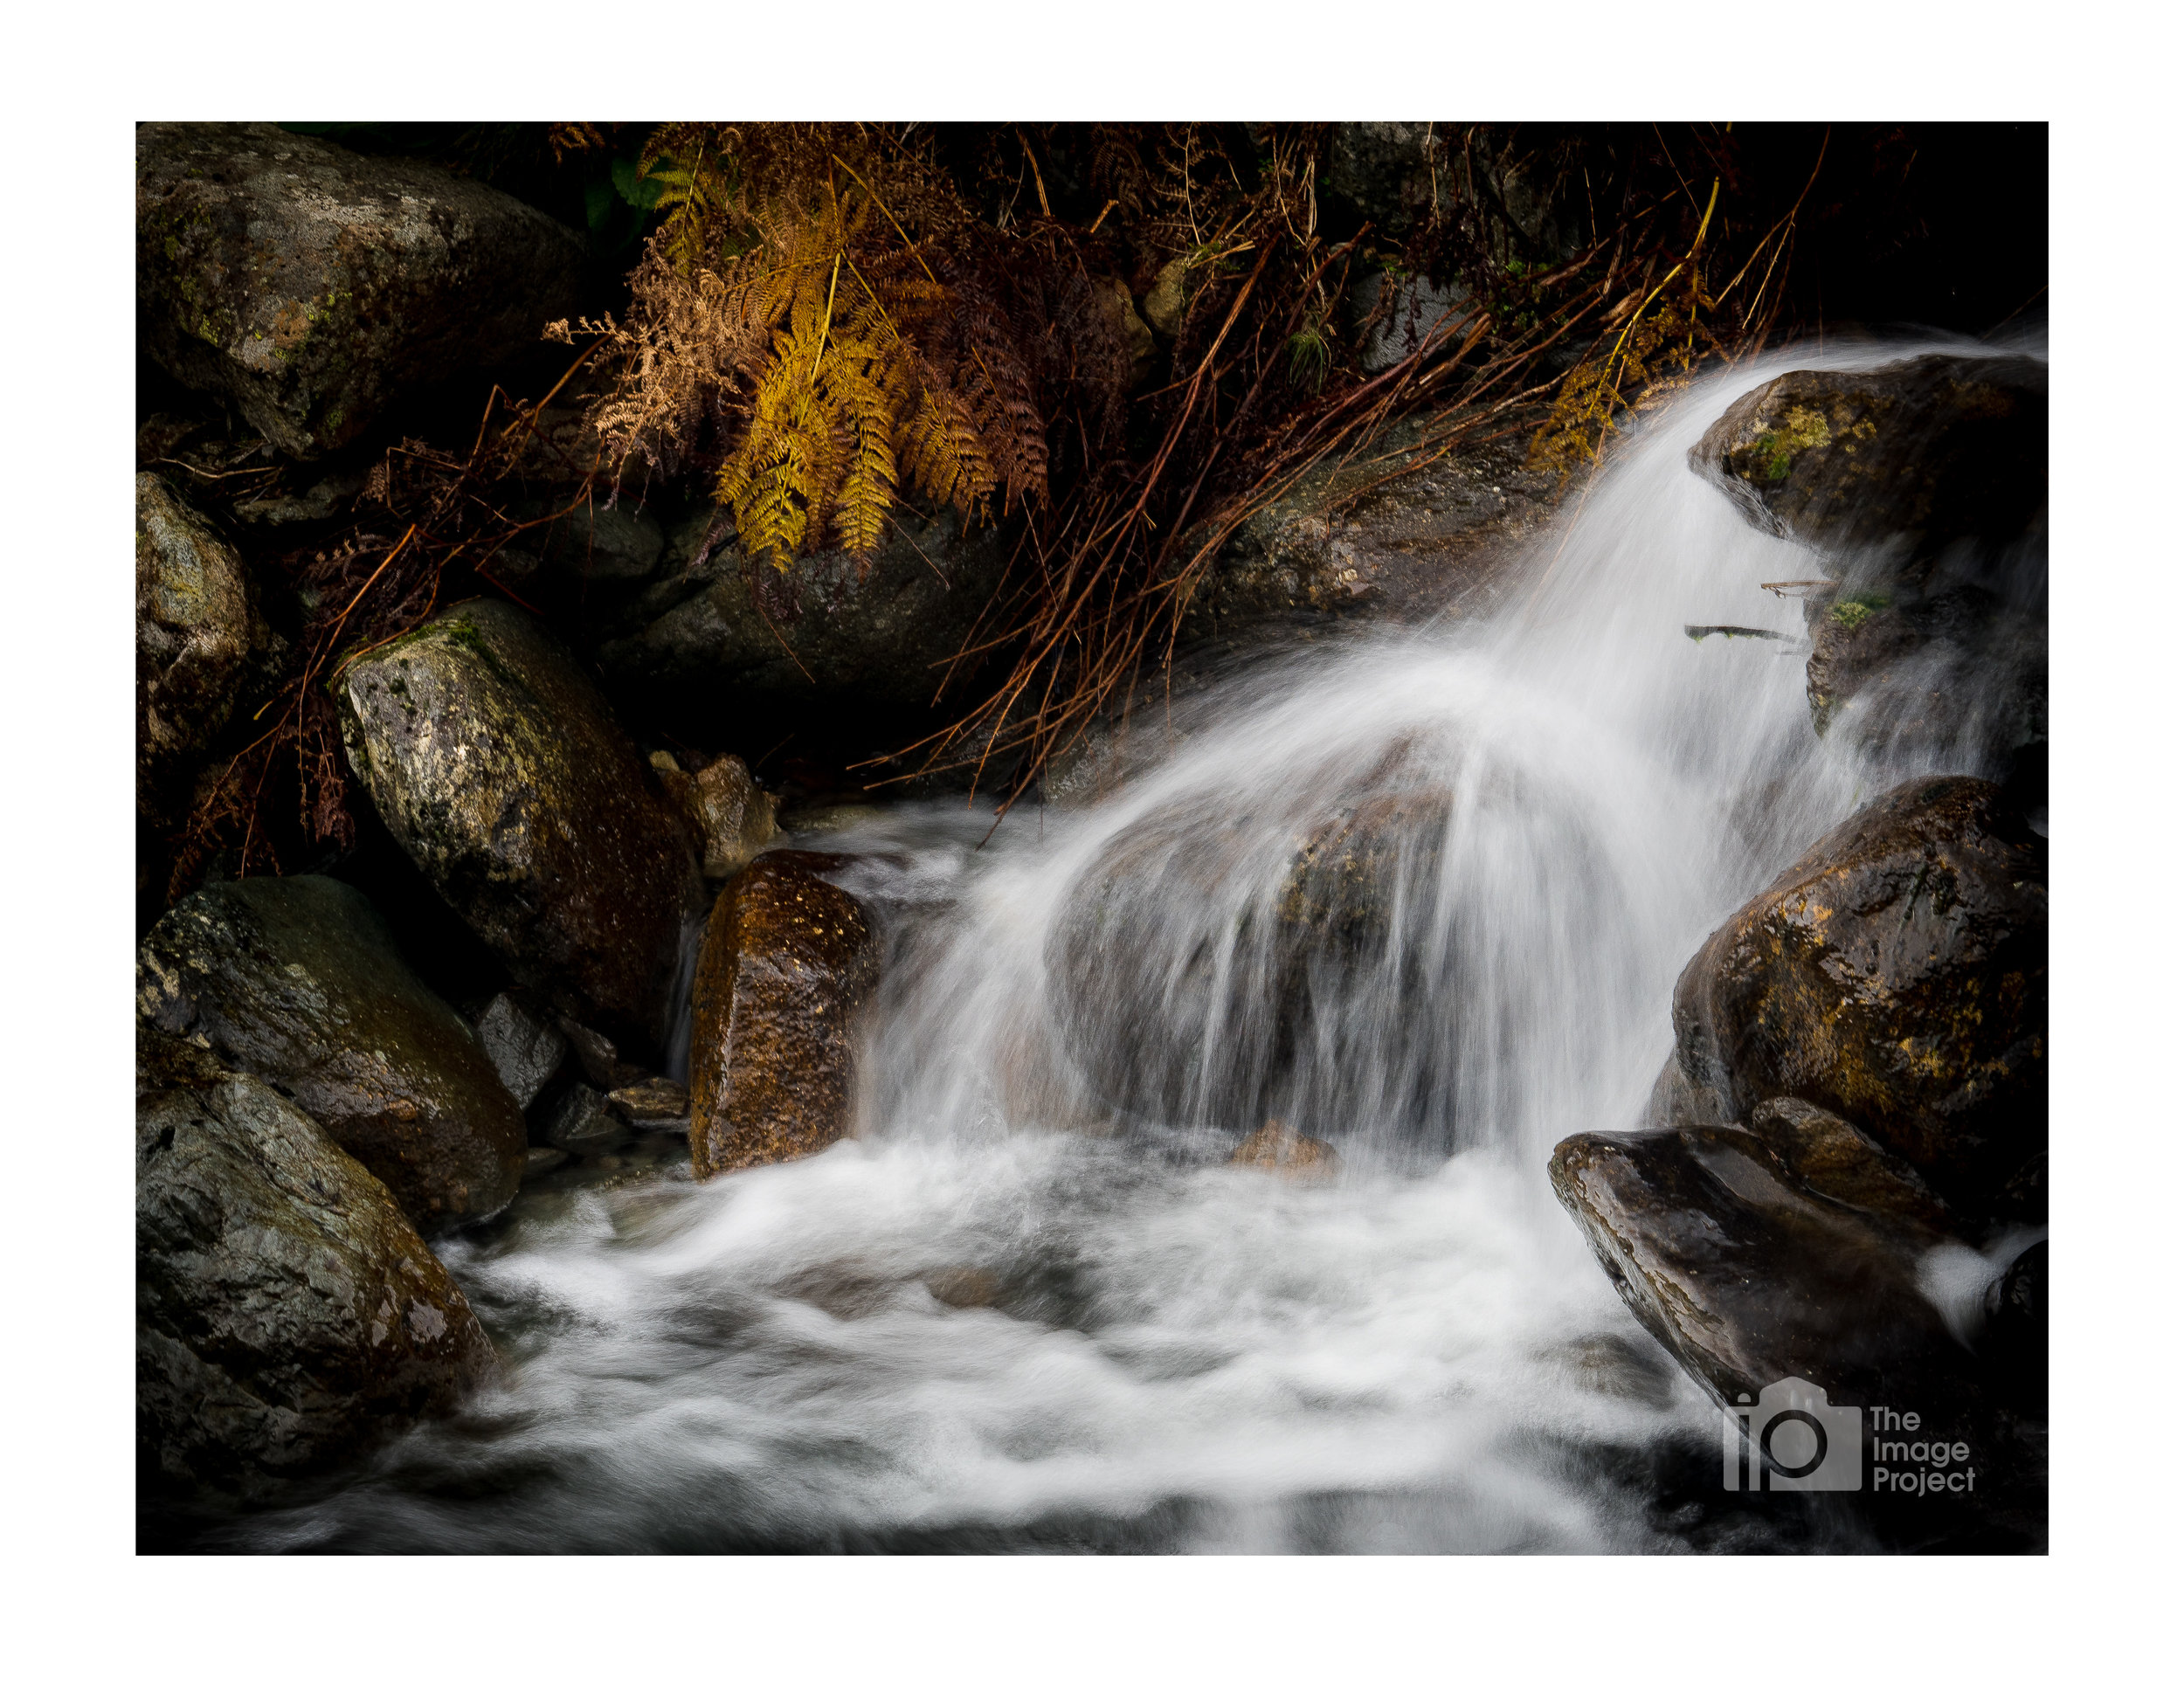 Water cascades into rockpool, near Brotherswater